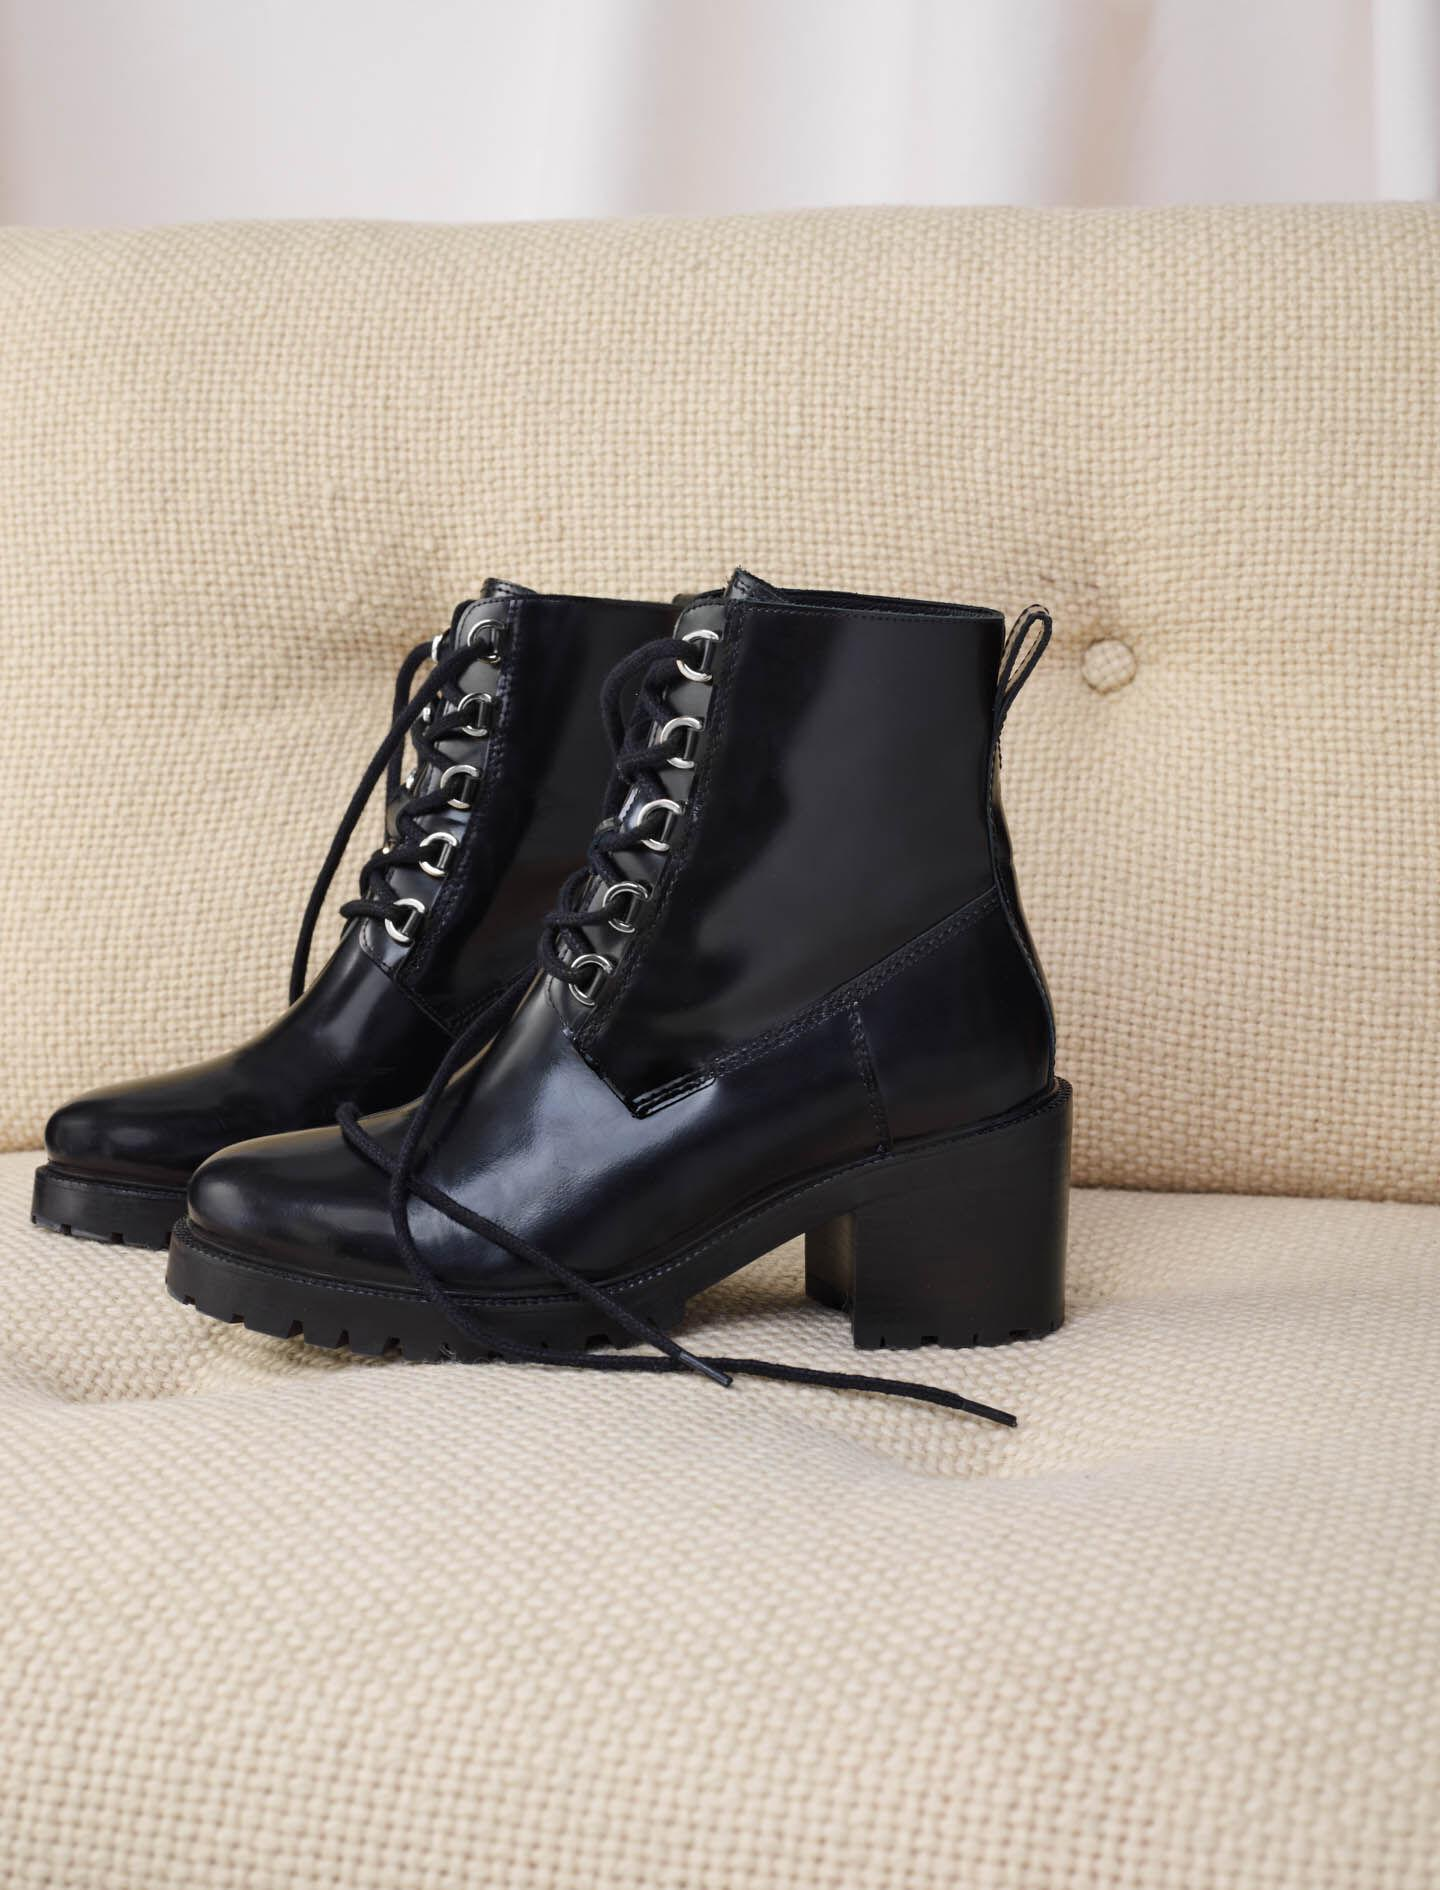 BLACK LEATHER HEELED BOOTS 5